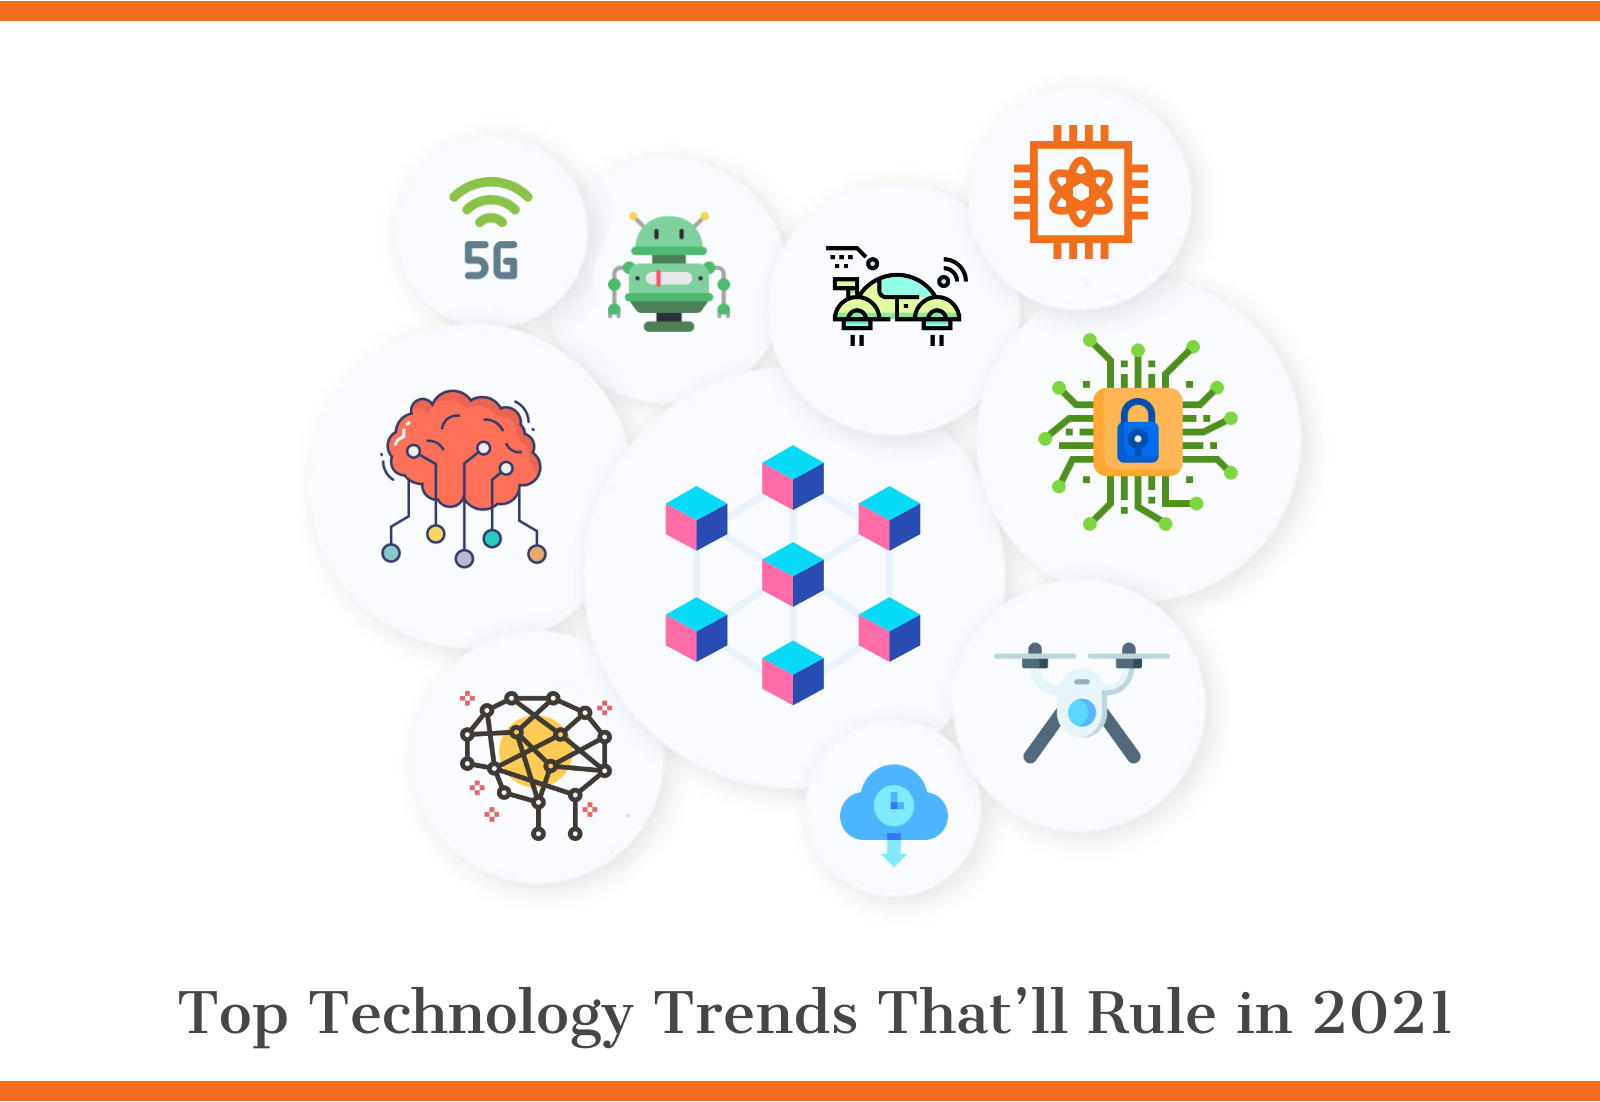 Image of top technology trends in 2021